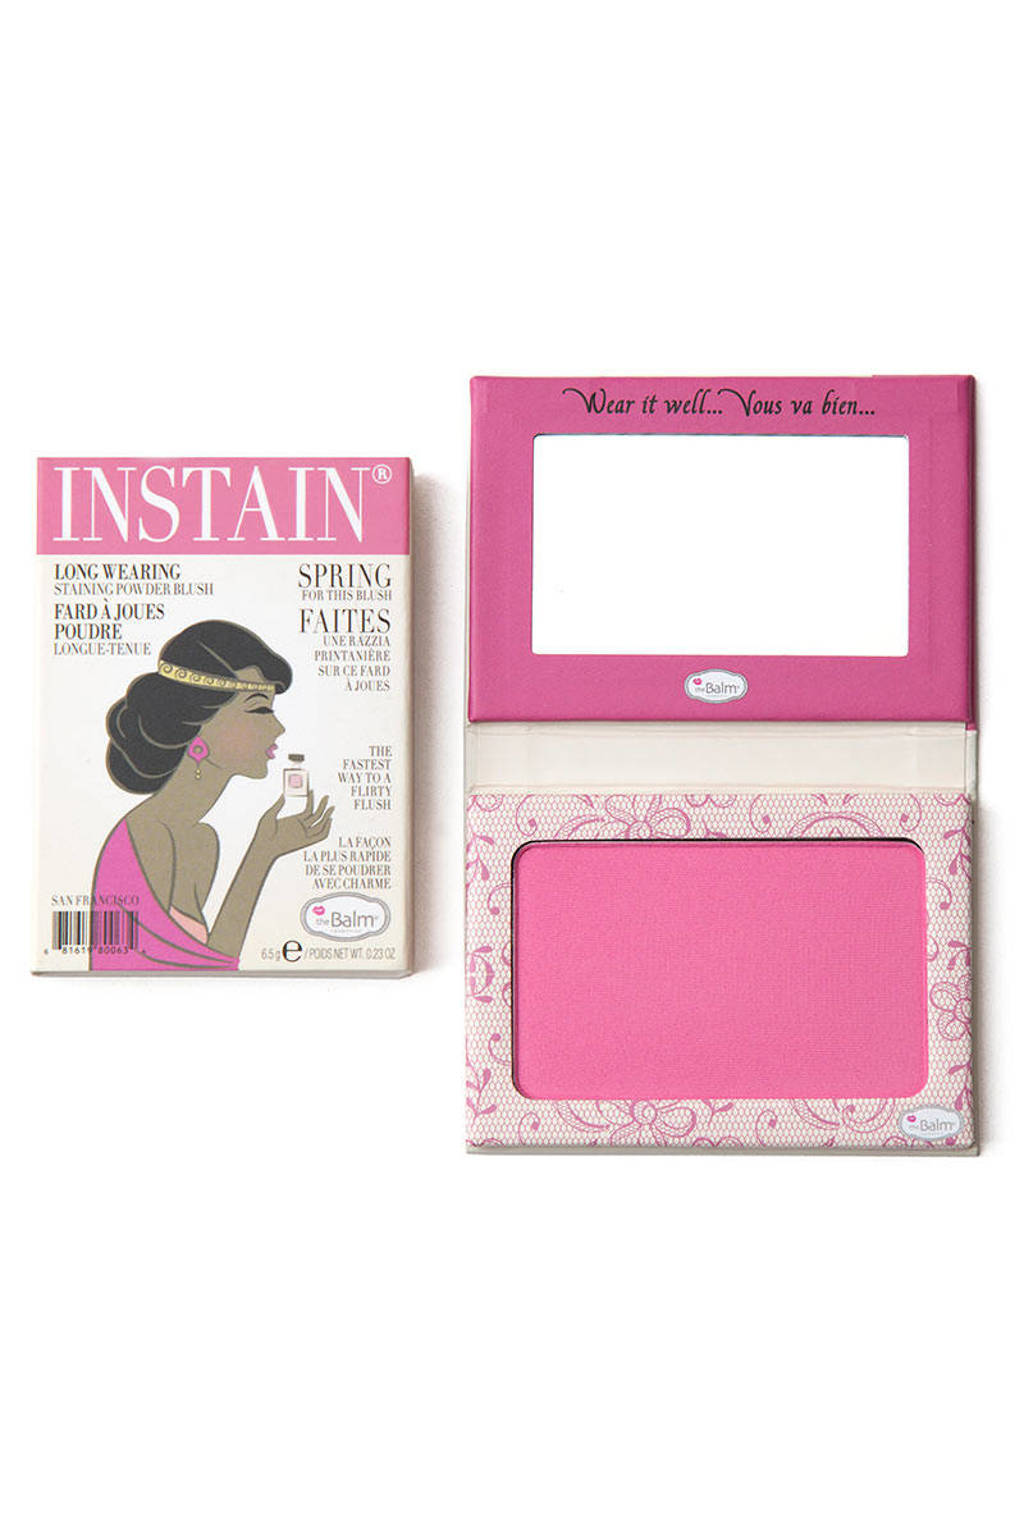 The Balm InStain blush - Lace, Bright Pink